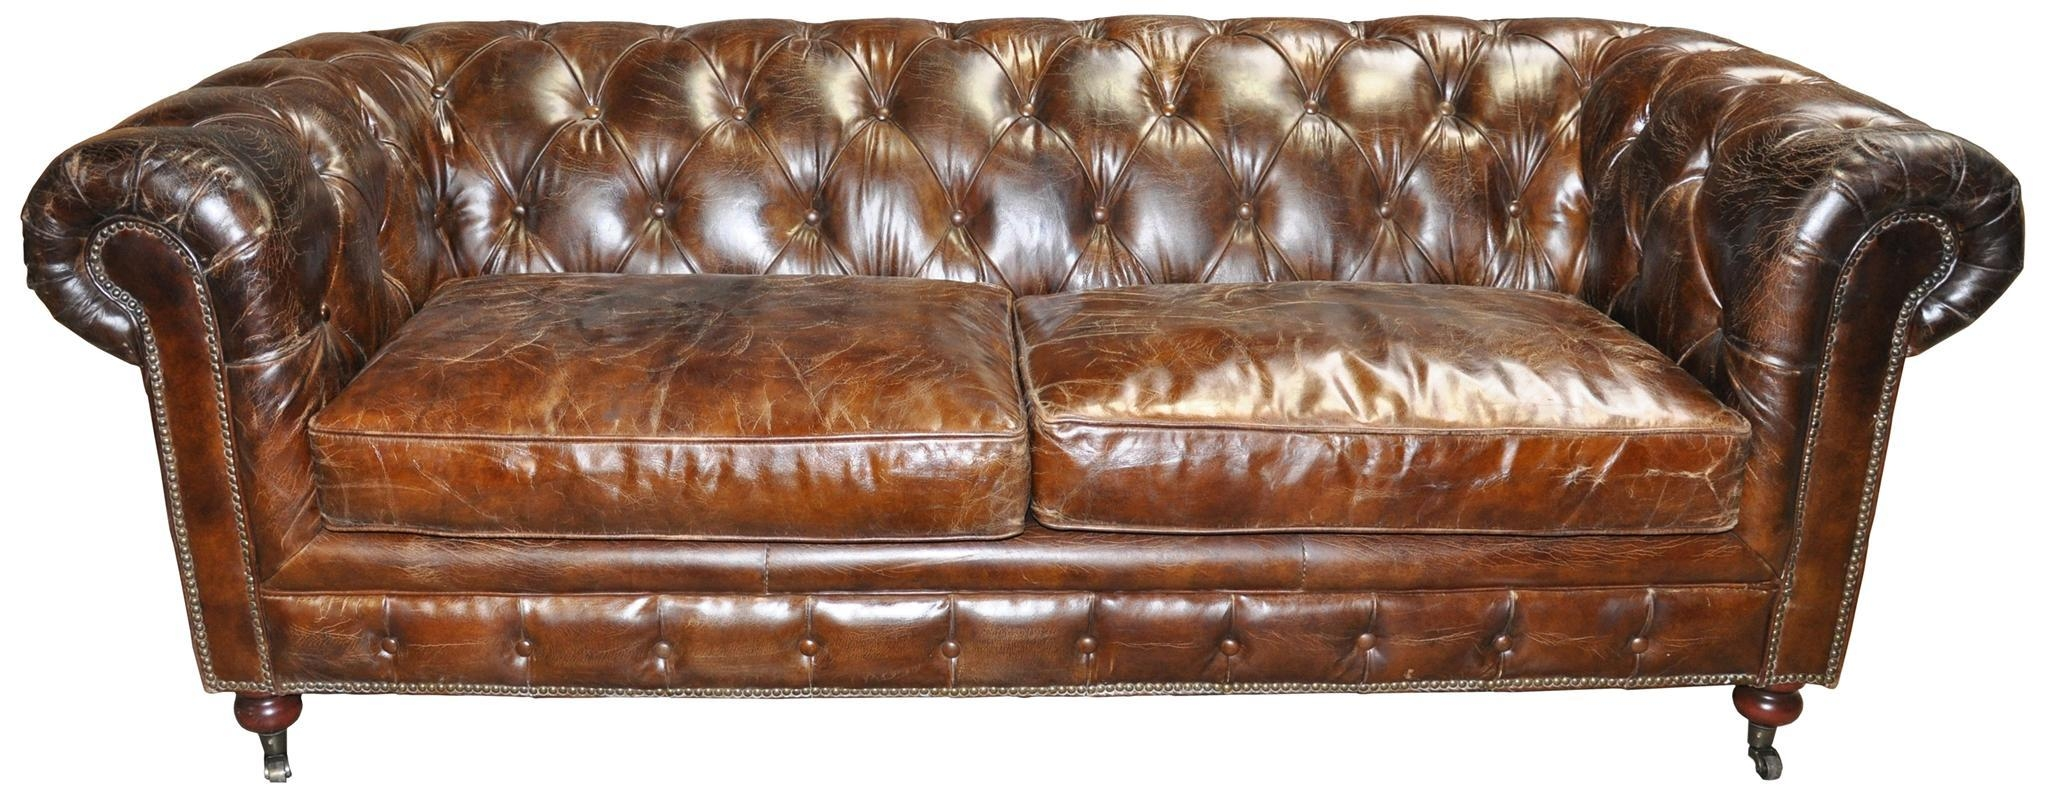 Tufted Sofas Toronto | Tehranmix Decoration Pertaining To Brown Tufted Sofas (Image 19 of 20)